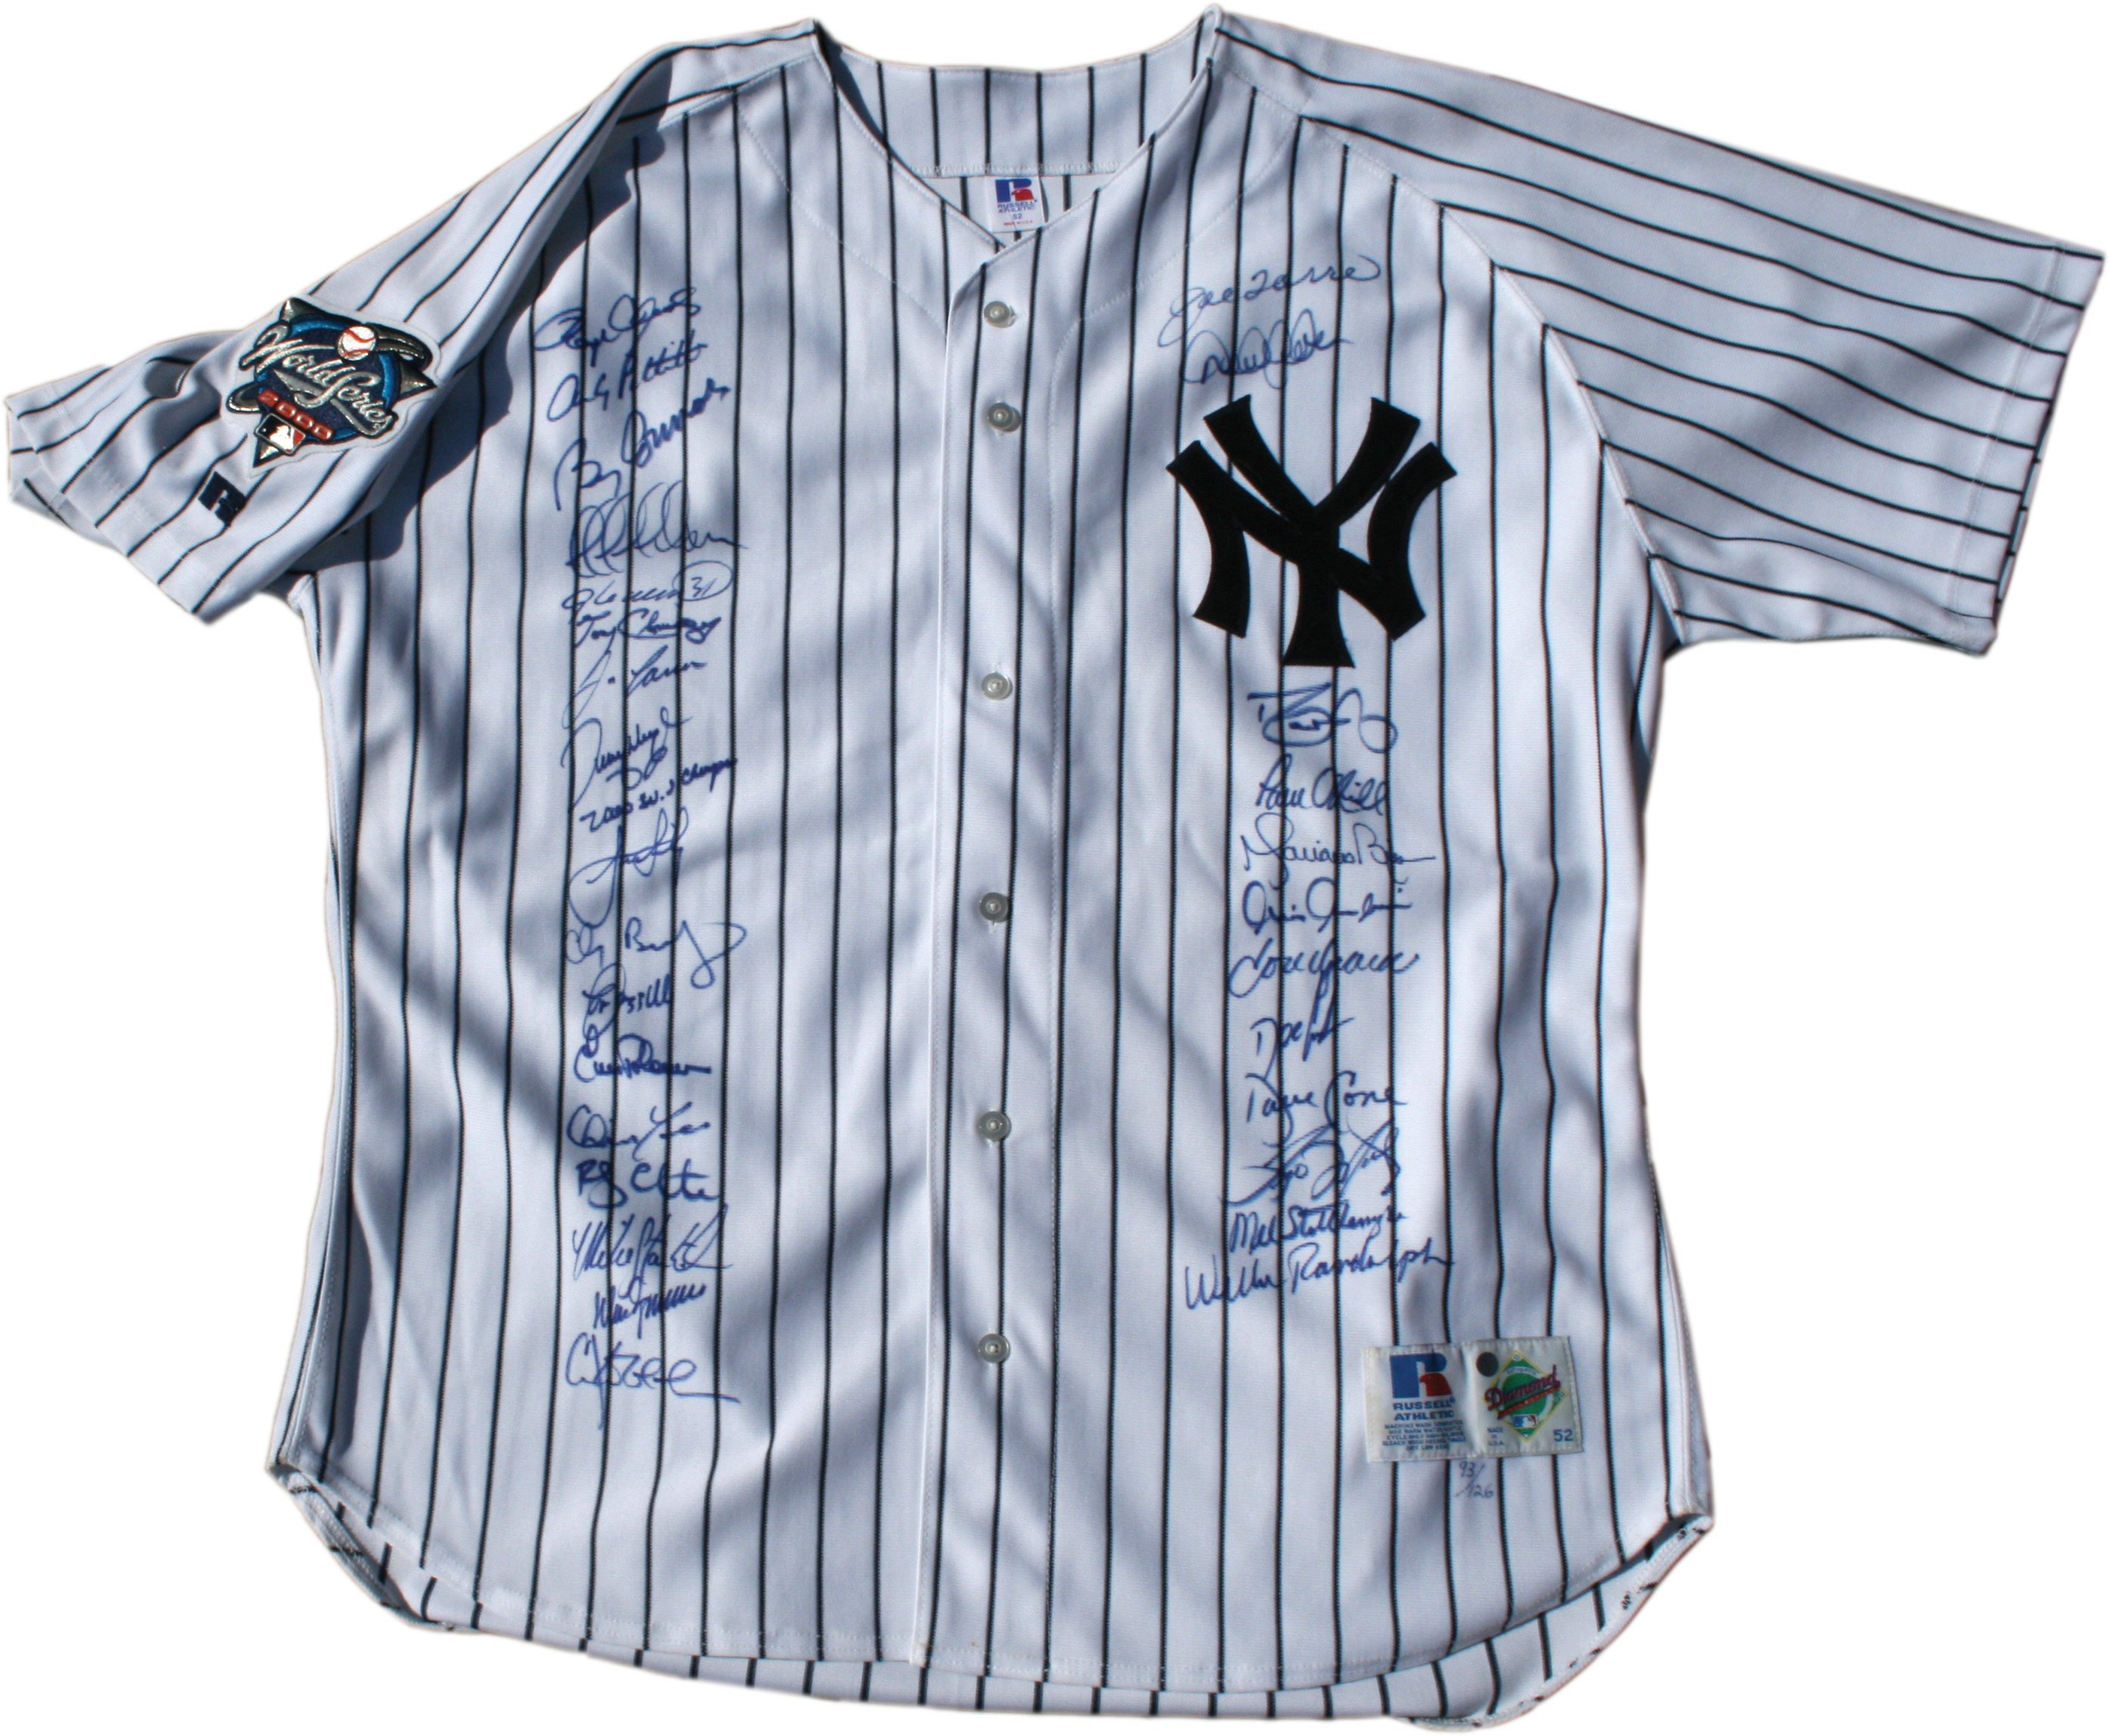 2000 World Series Champion New York Yankees Team Signed Derek Jeter Limited  Edition Jersey 93  ... afab194e5f1